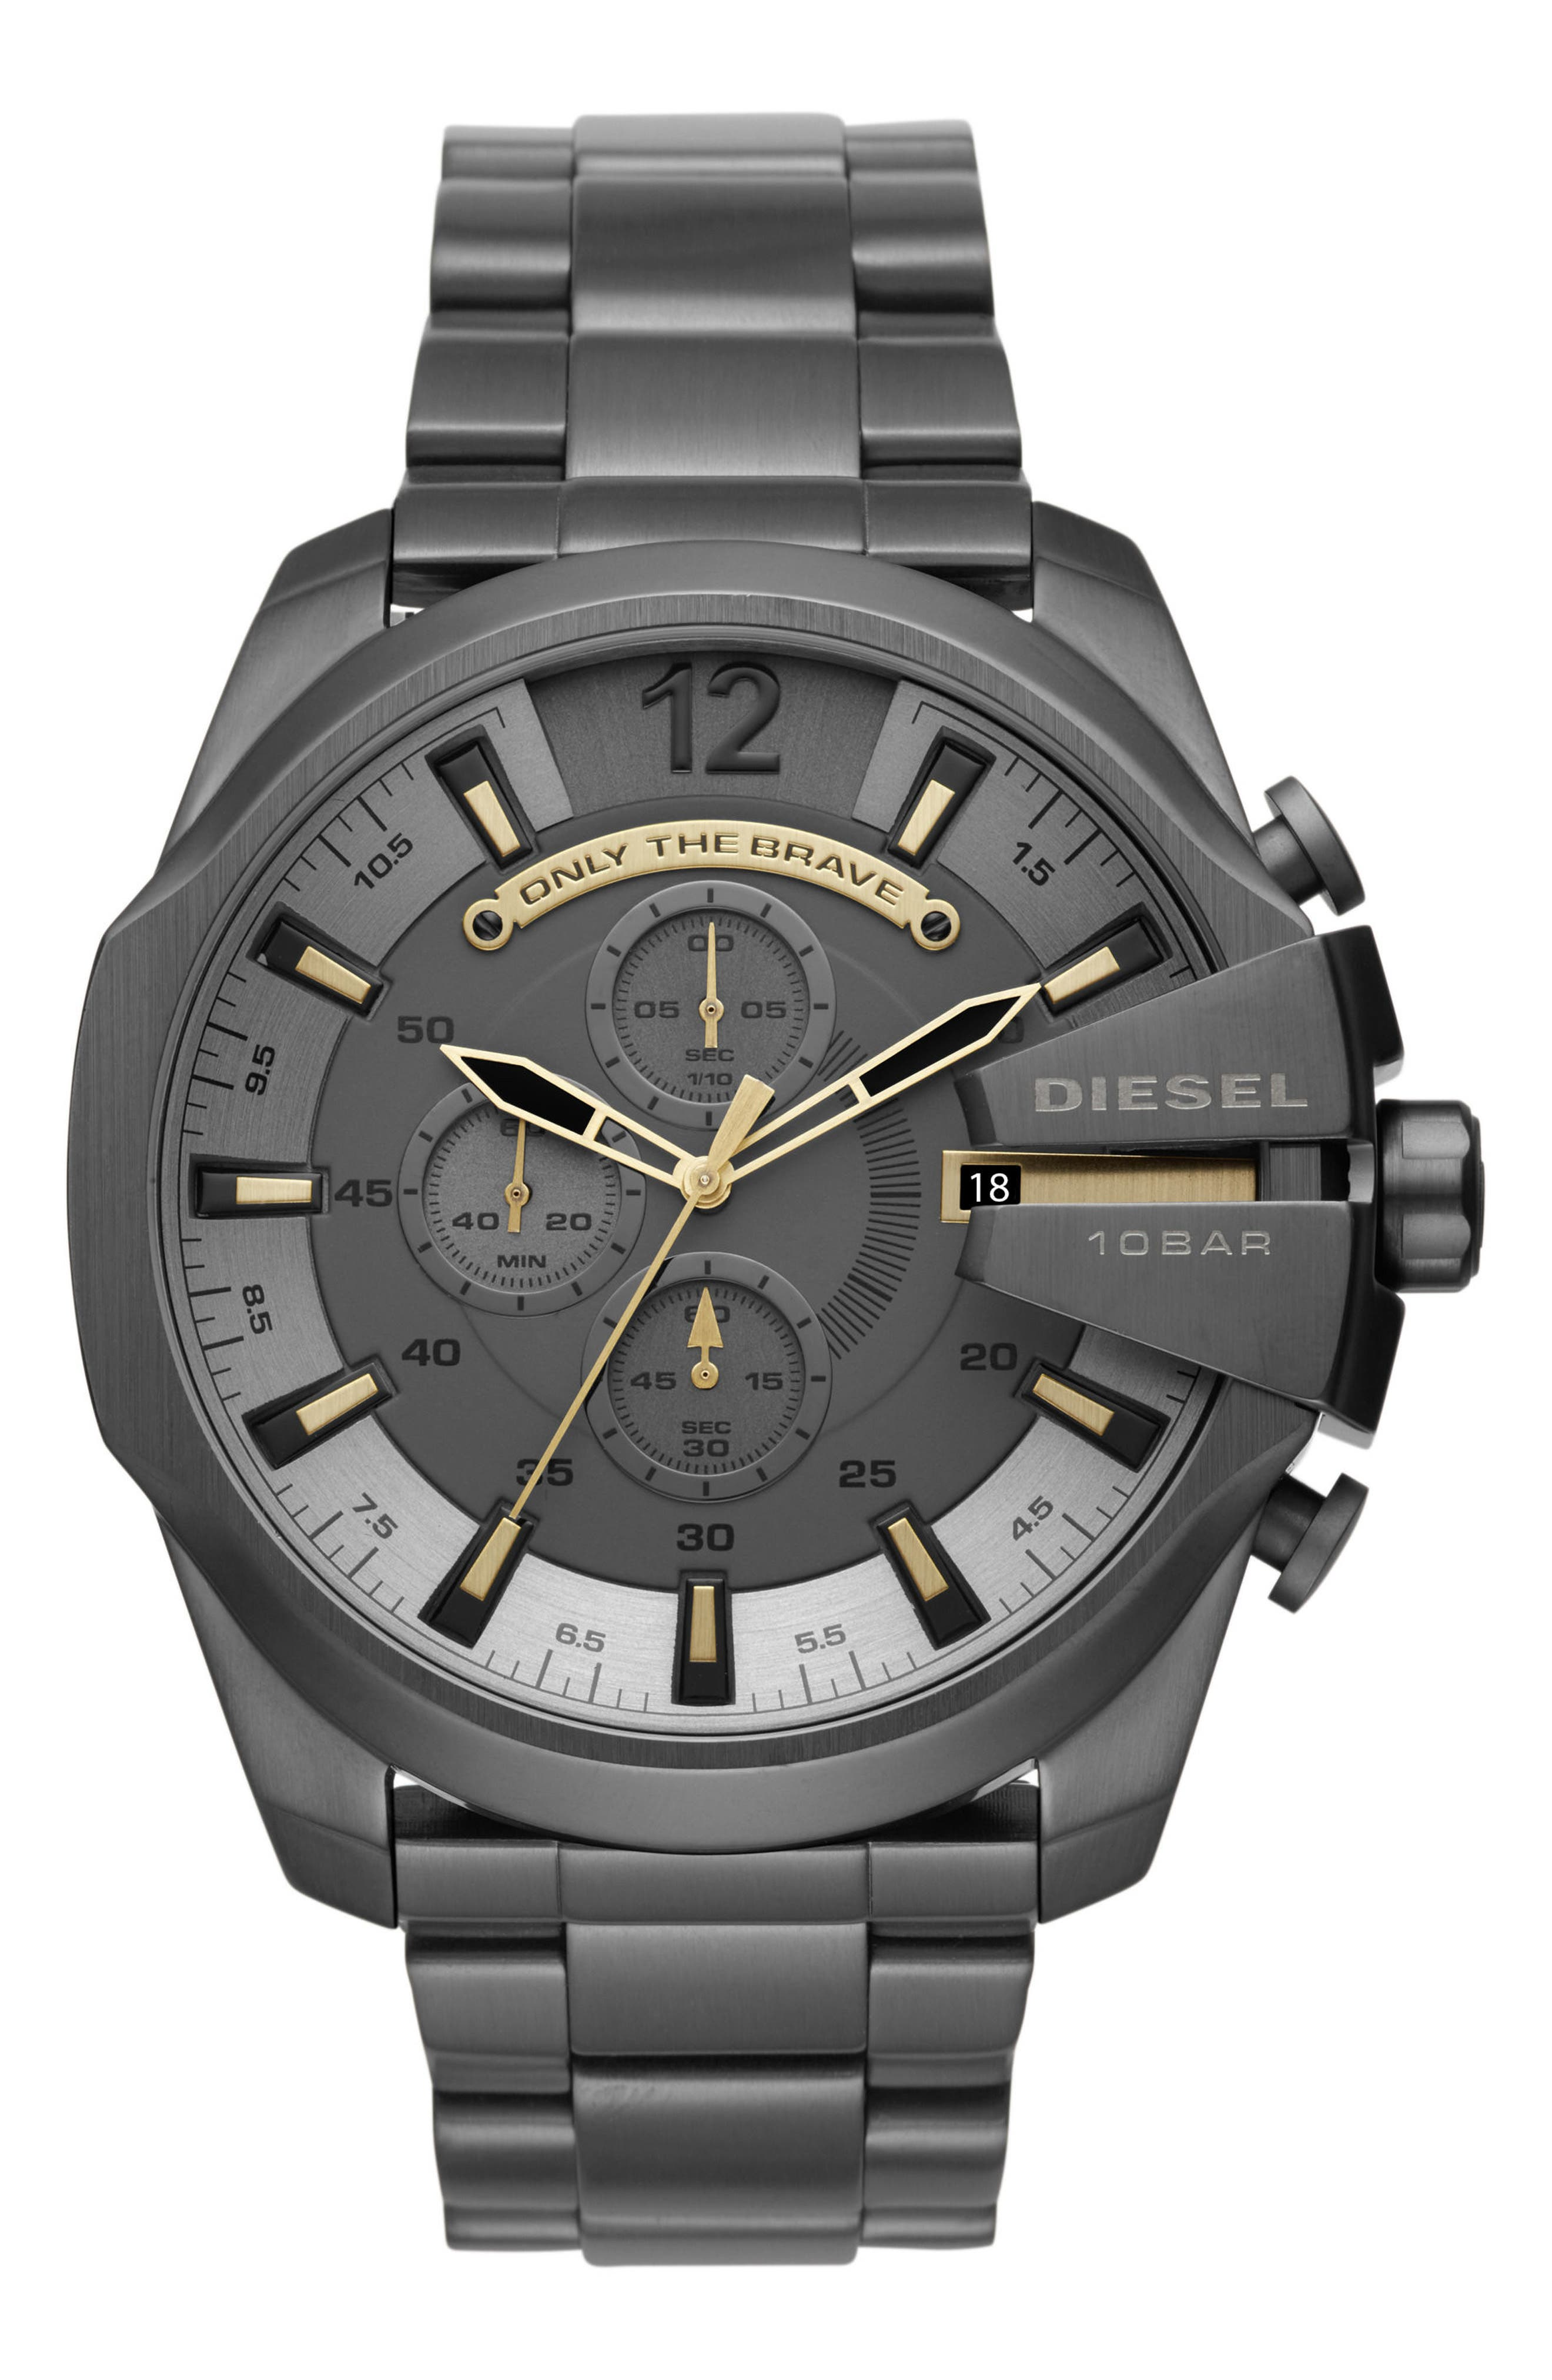 Alternate Image 1 Selected - DIESEL Mega Chief Chronograph Bracelet Watch, 51mm x 59mm